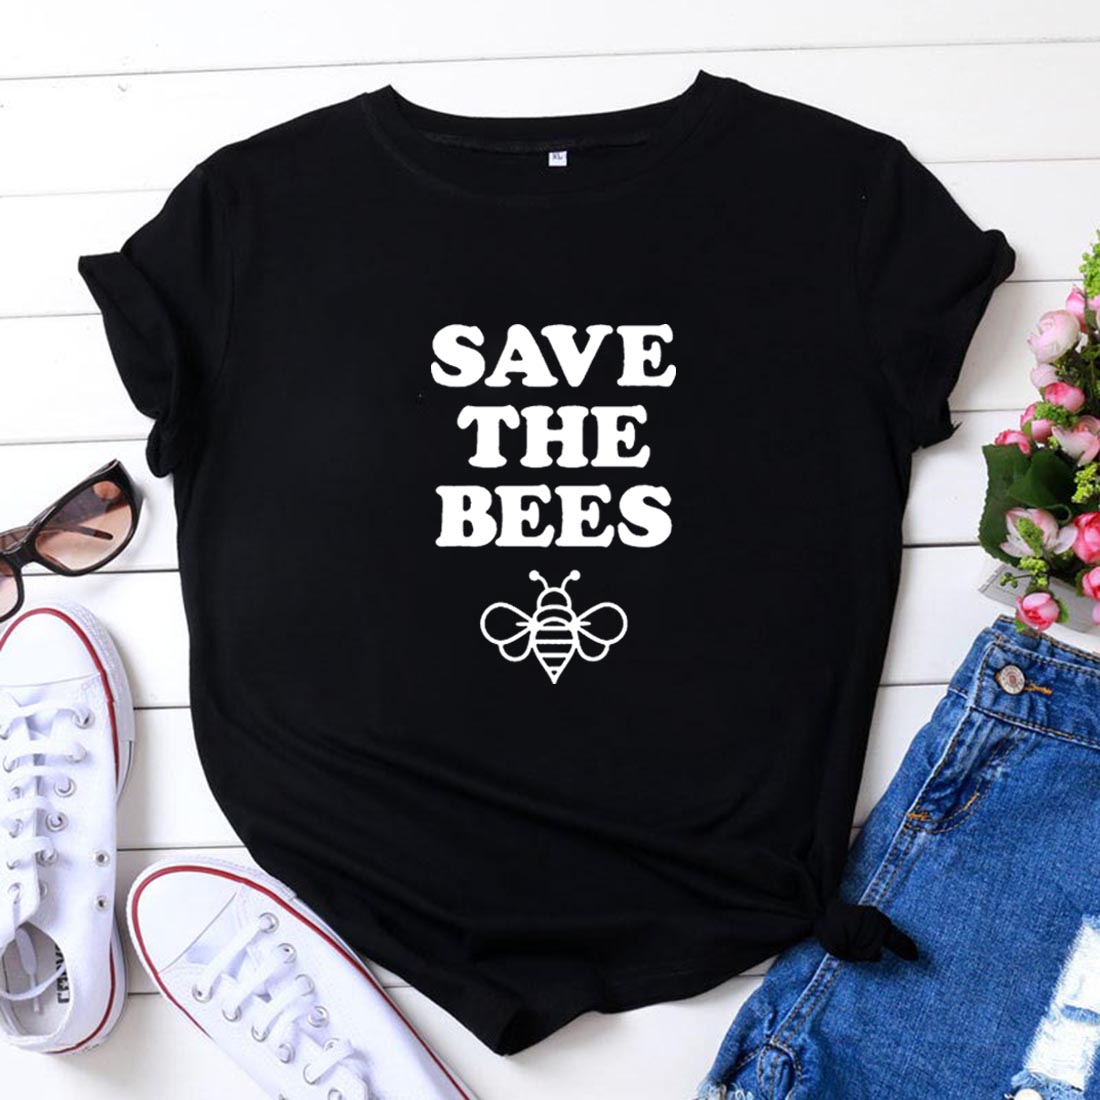 Save The Bees Funny T Shirt Women Top Harajuku Tshirt Women Short Sleeveblack Lives Matter Shirt Casual Tee Shirt Femme T-shirt